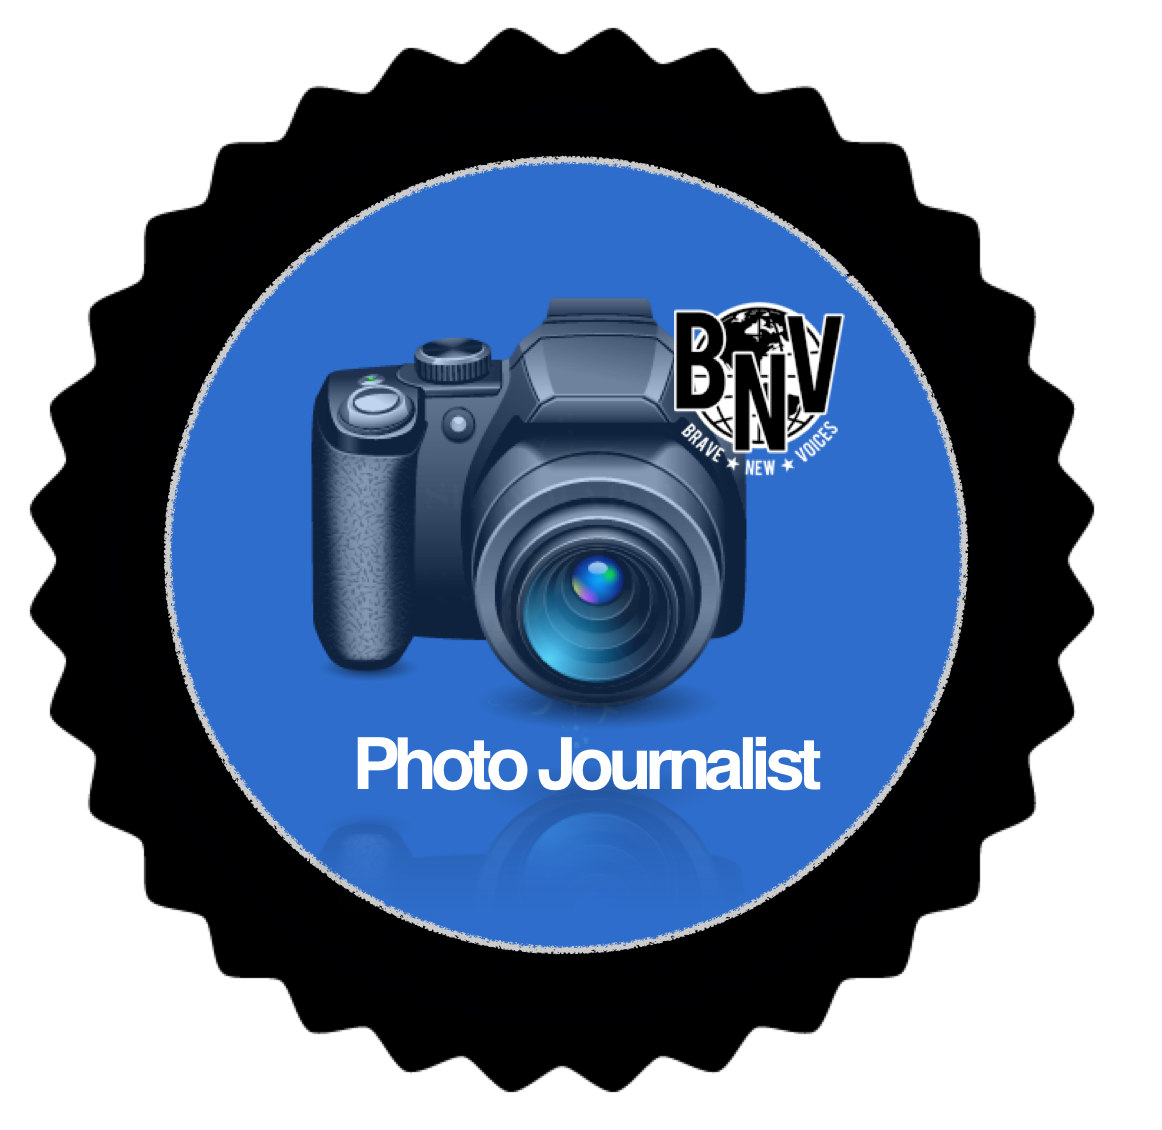 BNV Photo Journalist